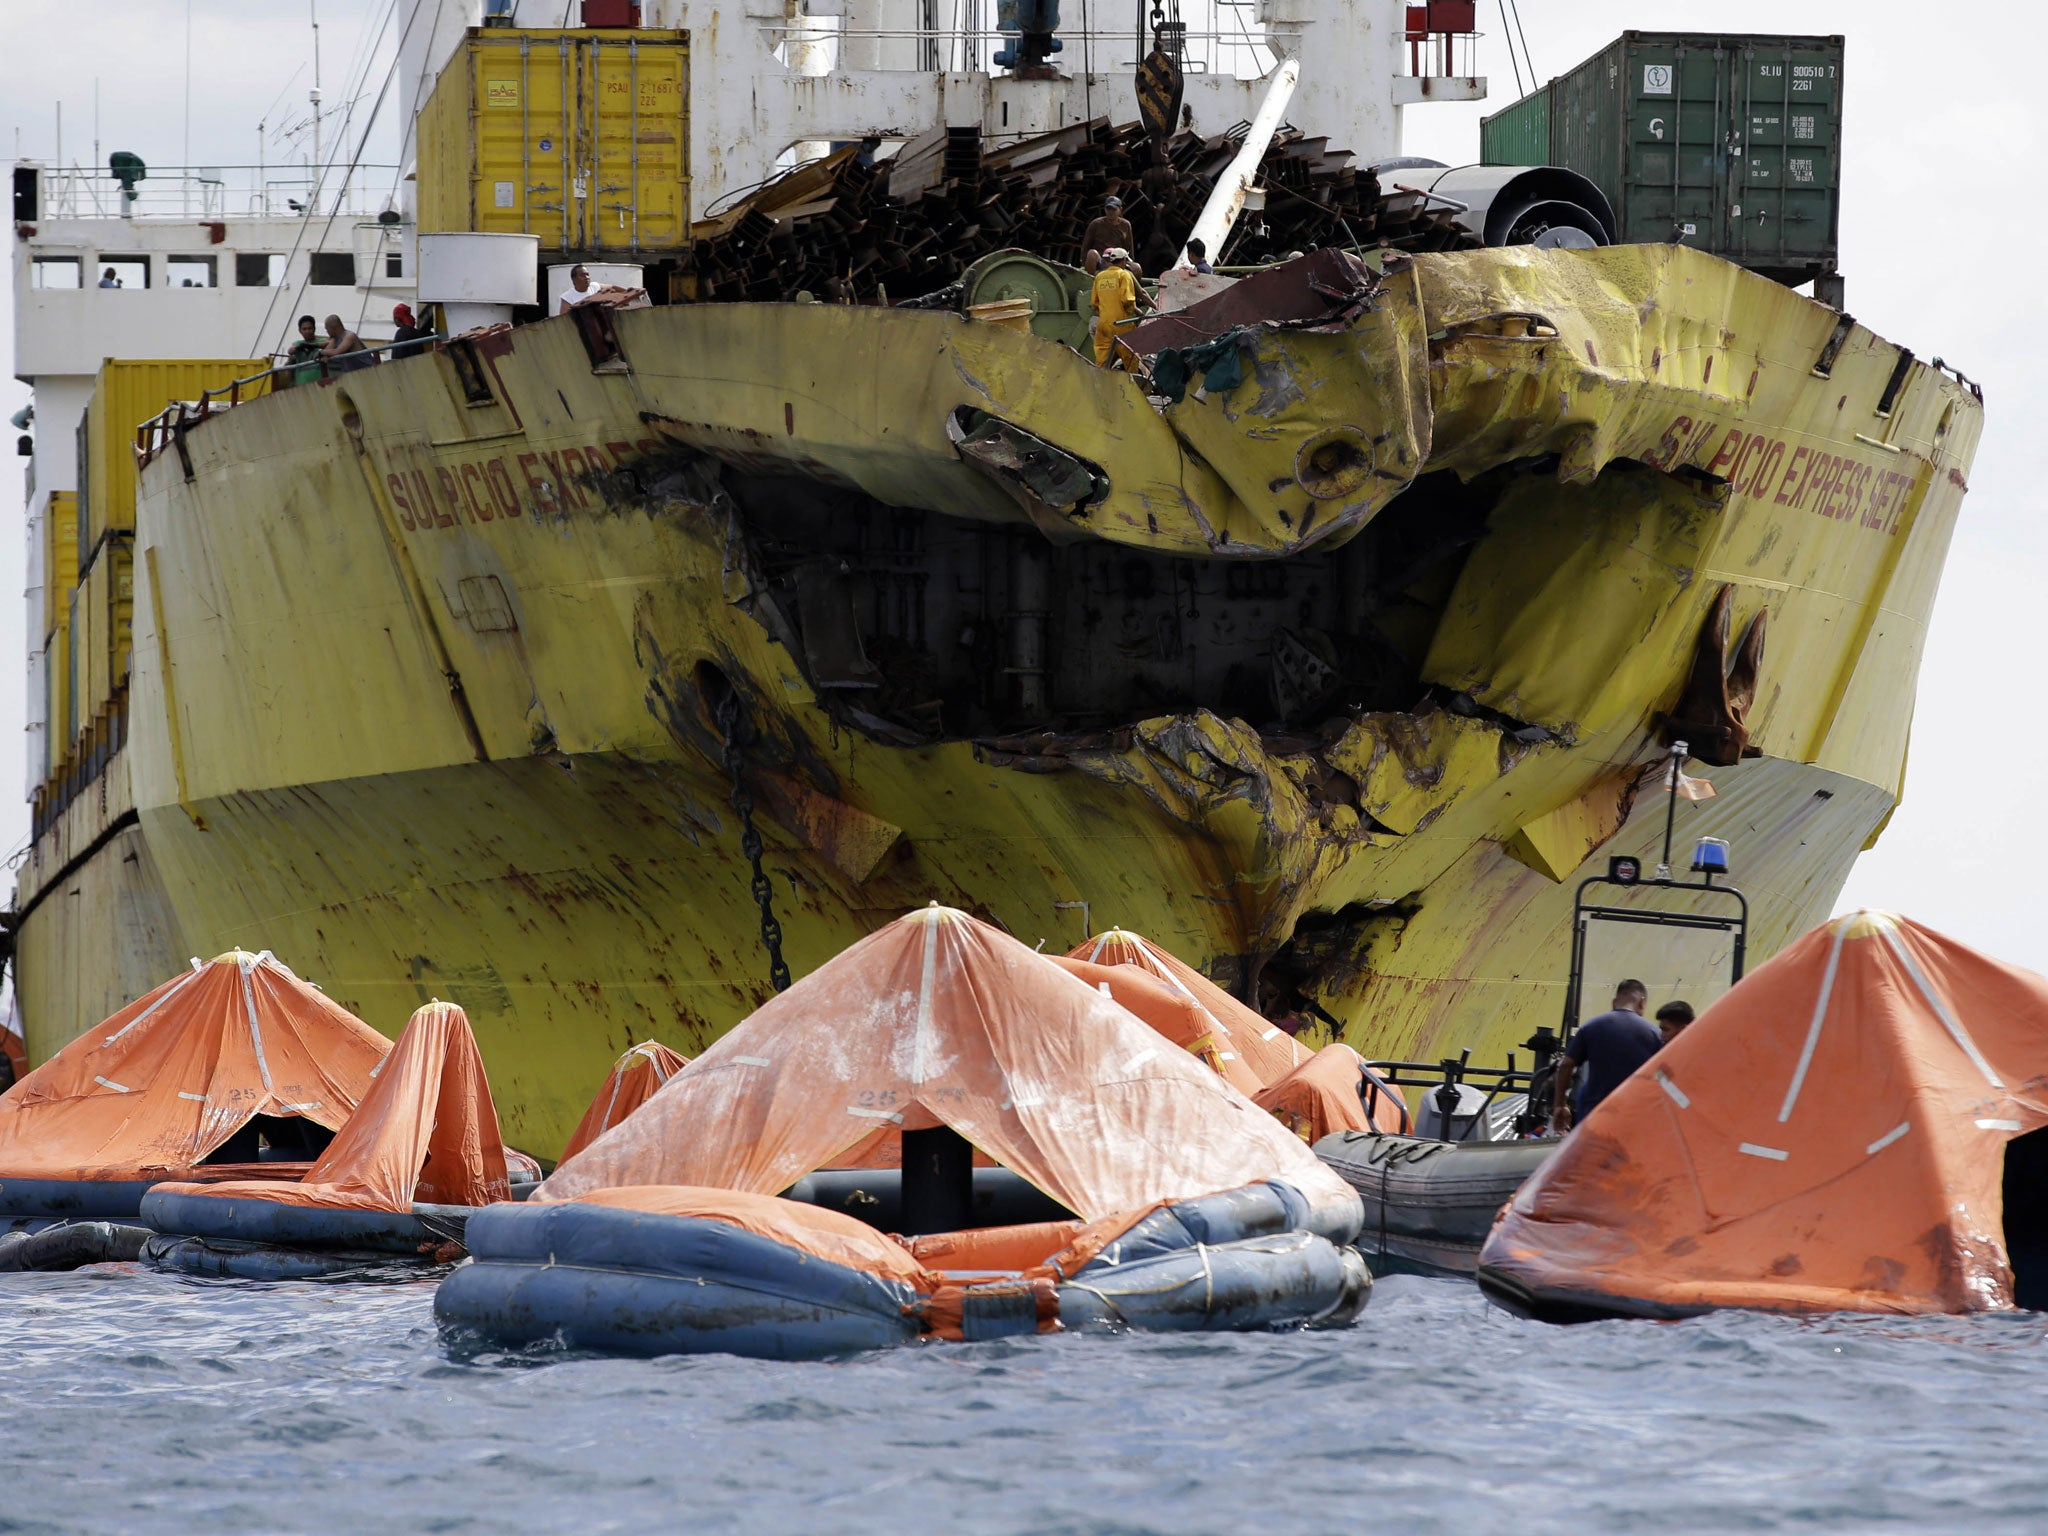 1 what were the reasons for the sinking of the vessels